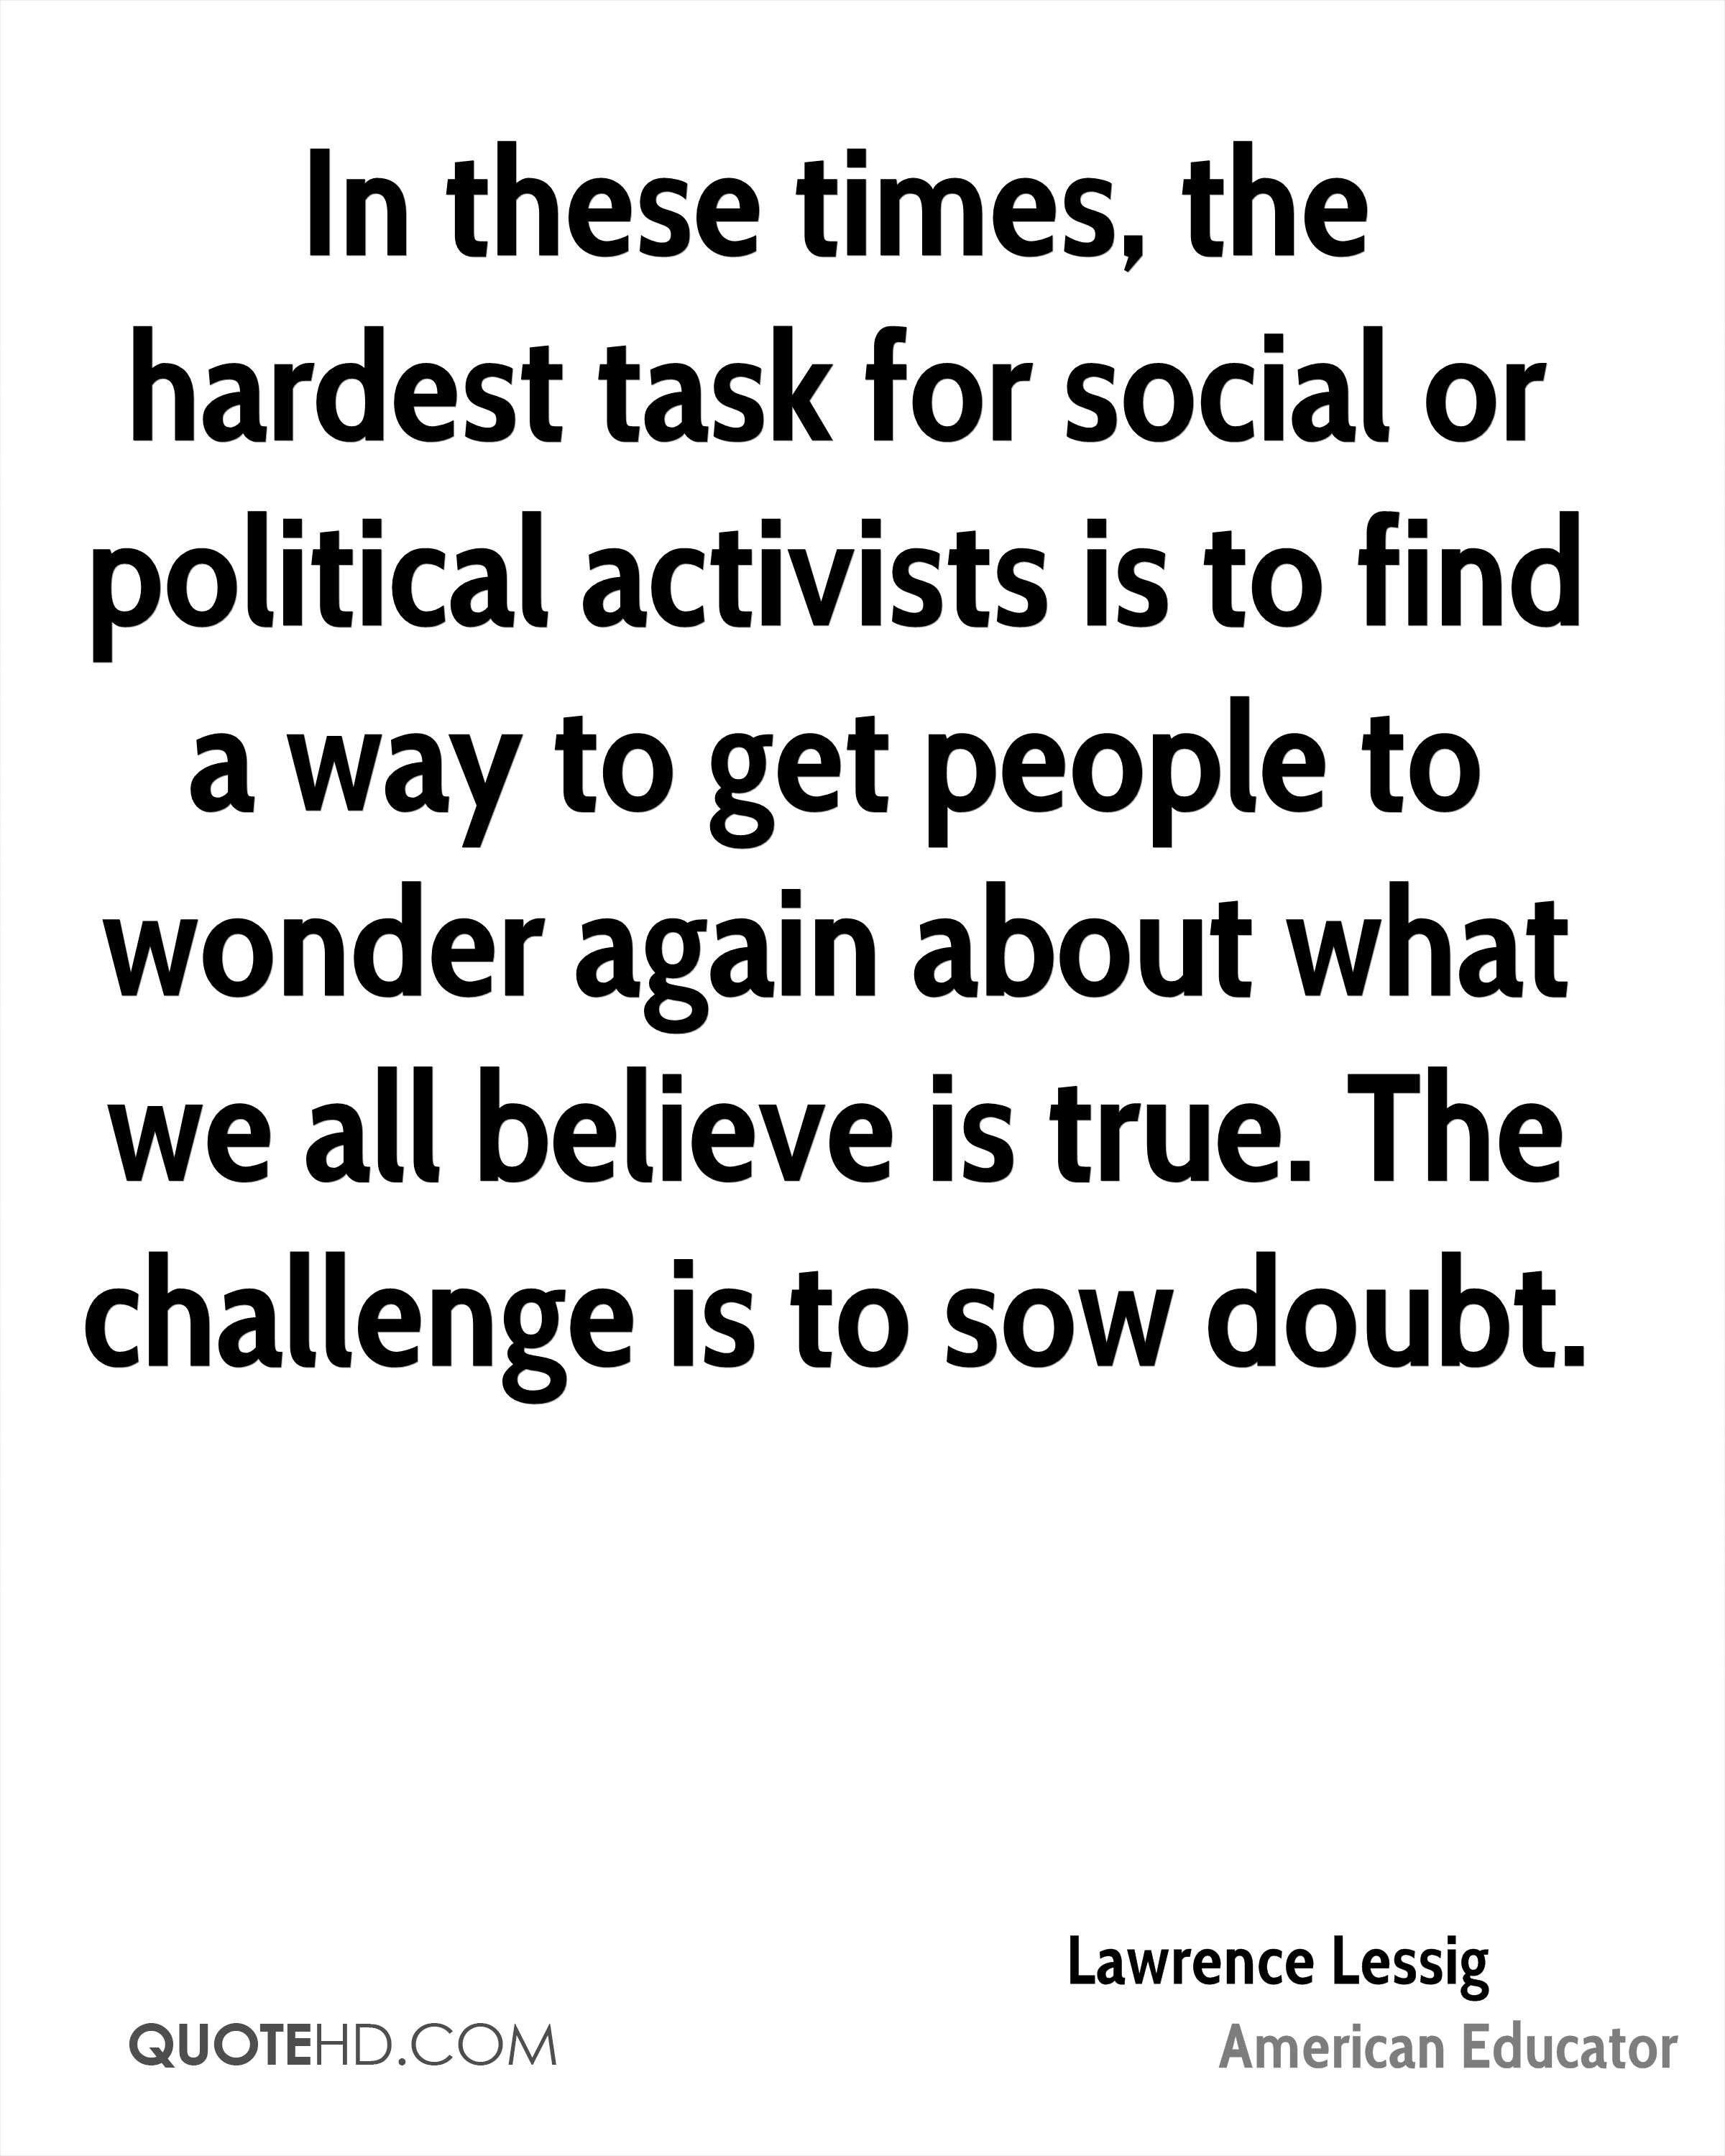 In these times, the hardest task for social or political activists is to find a way to get people to wonder again about what we all believe is true. The challenge is to sow doubt.